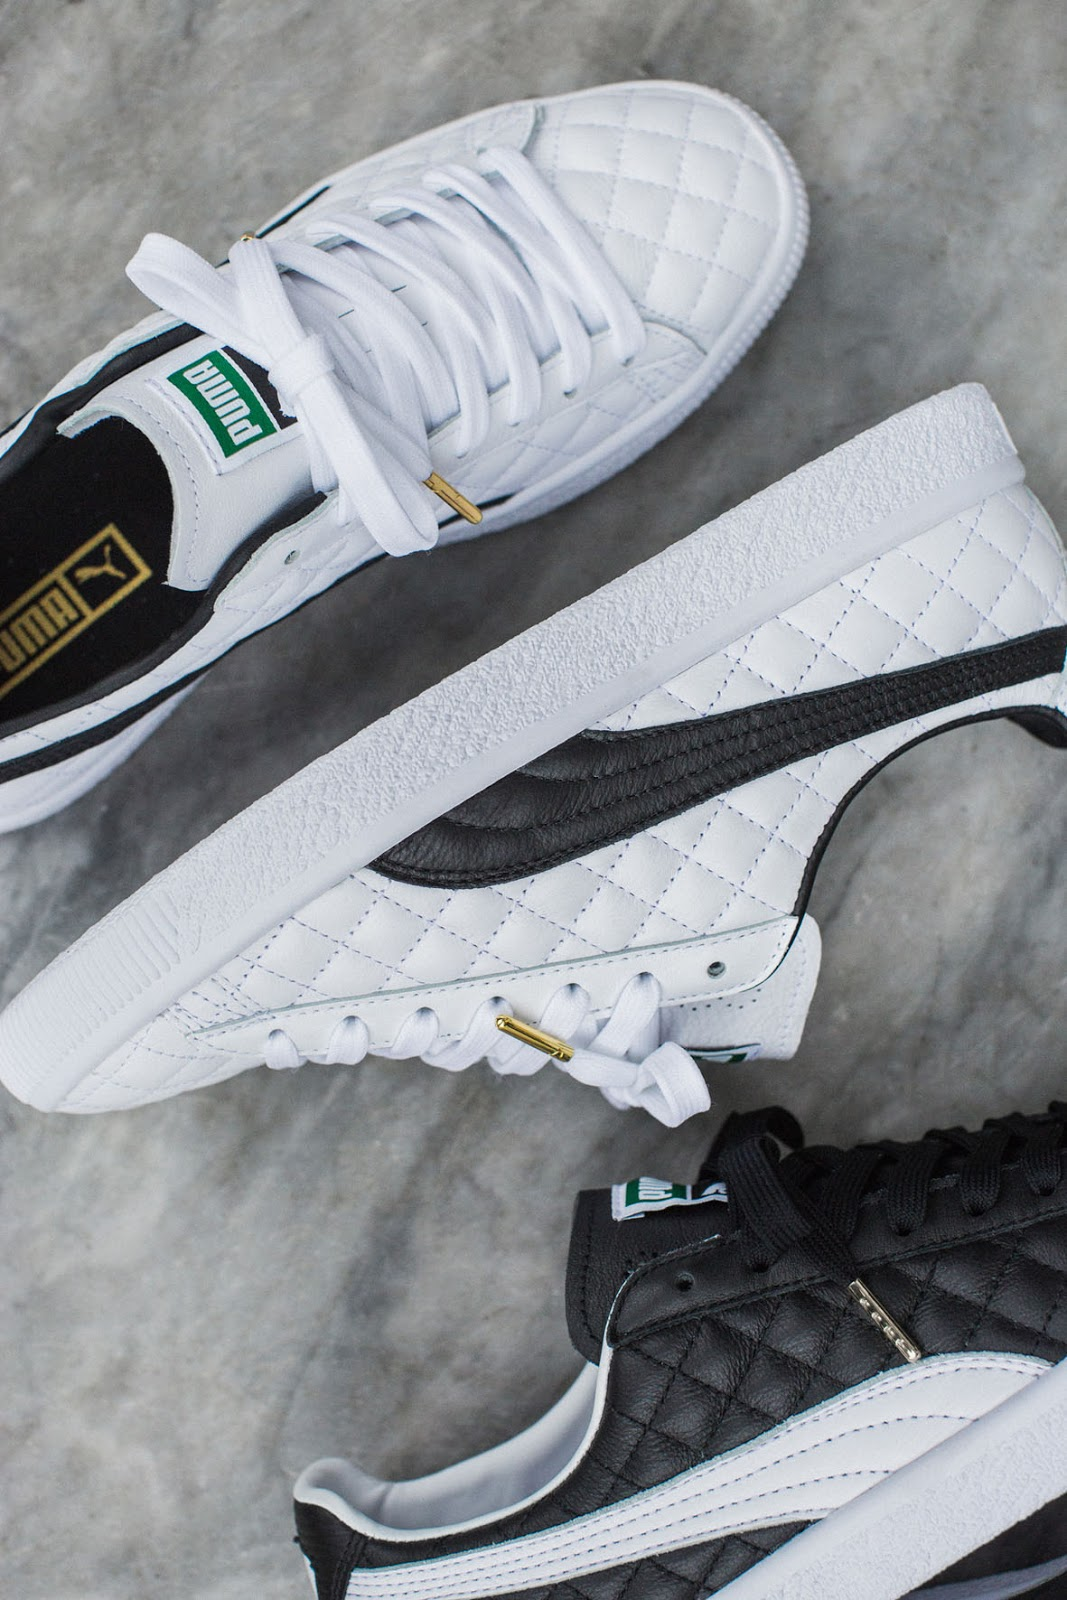 Logro Umeki Janice  Swag Craze: First Look: The New Clyde 'Dressed' Pack by PUMA